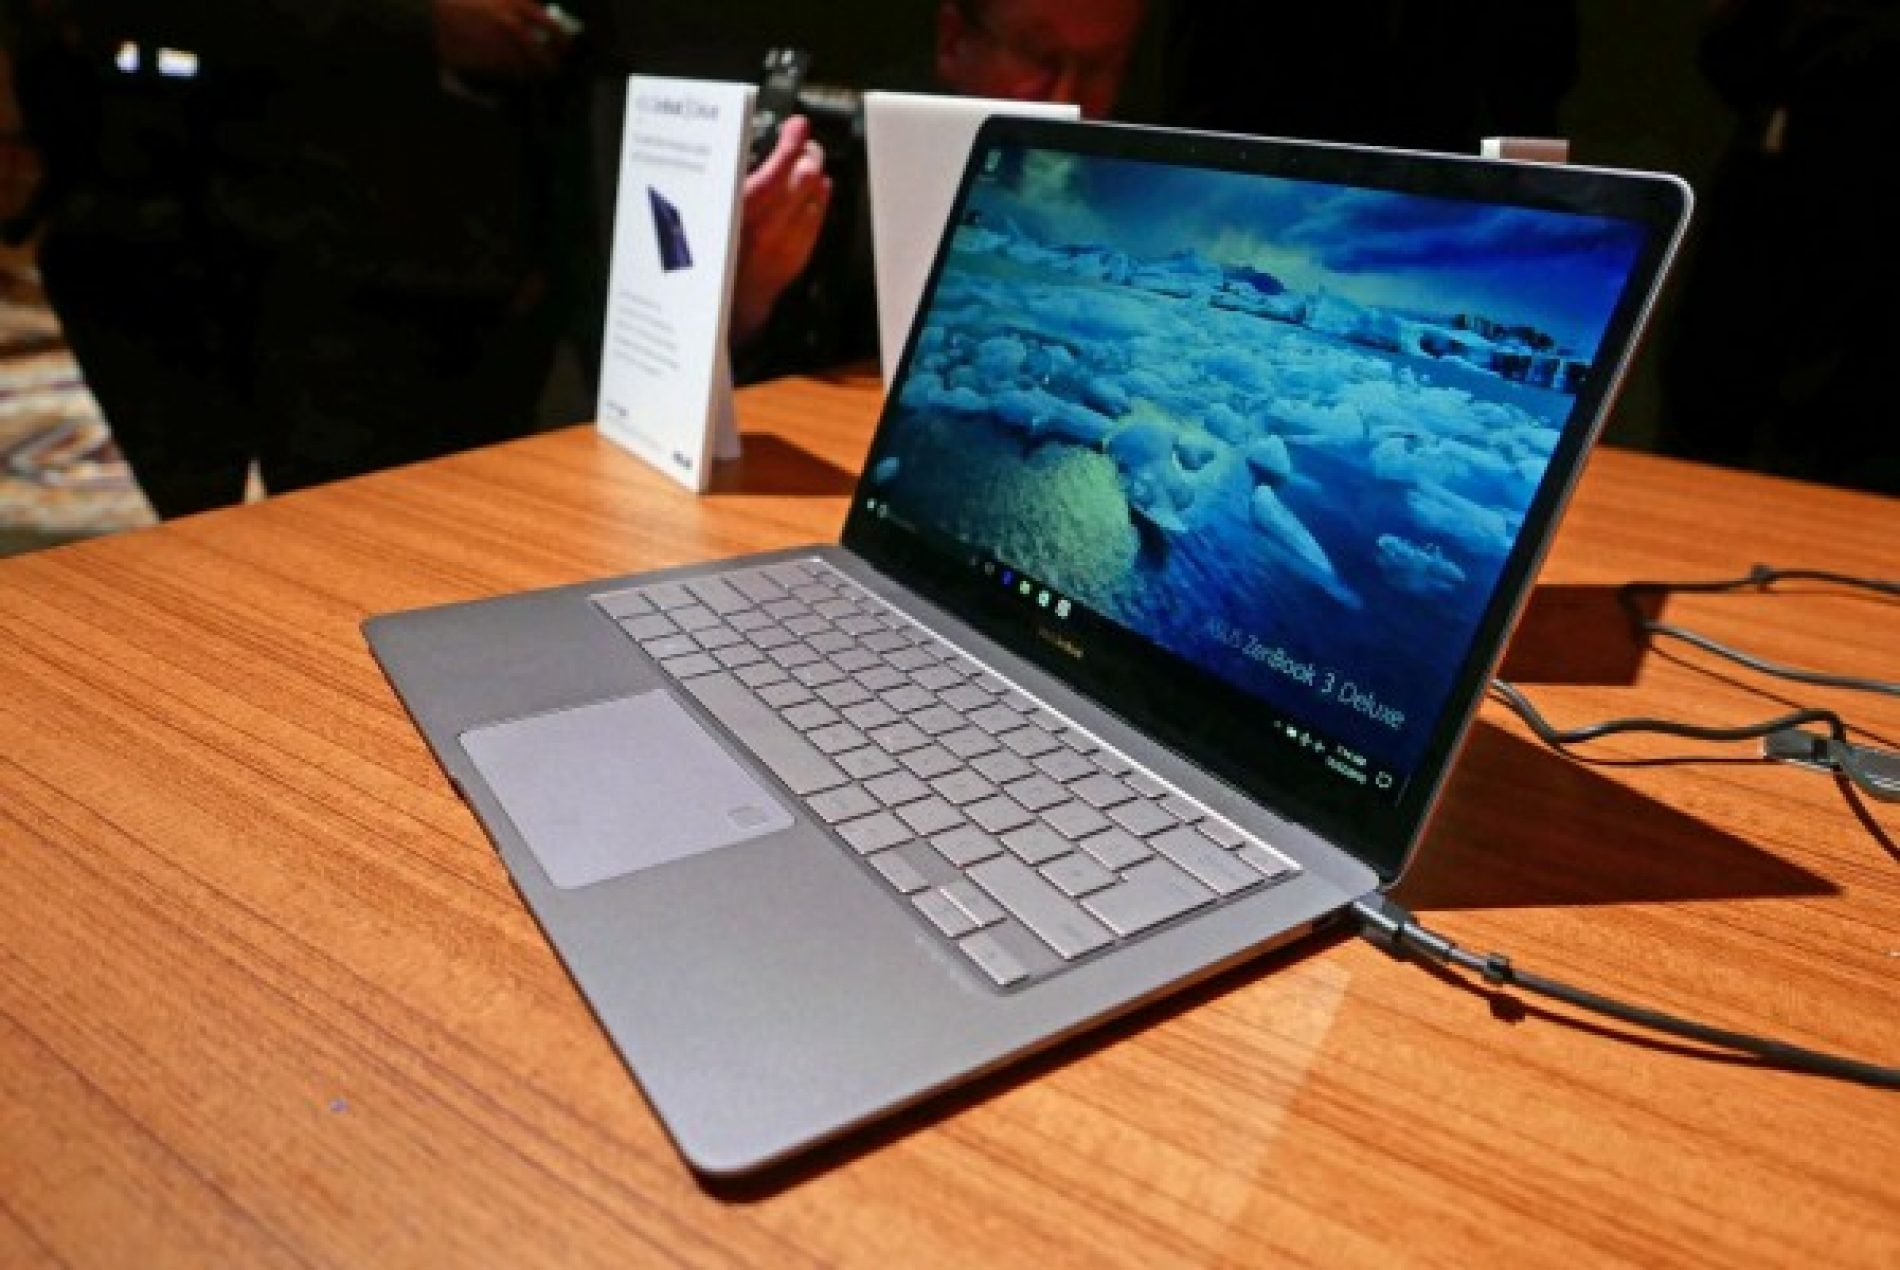 Asus ZenBook 3 Deluxe Adds More Ports, Power and Pixels